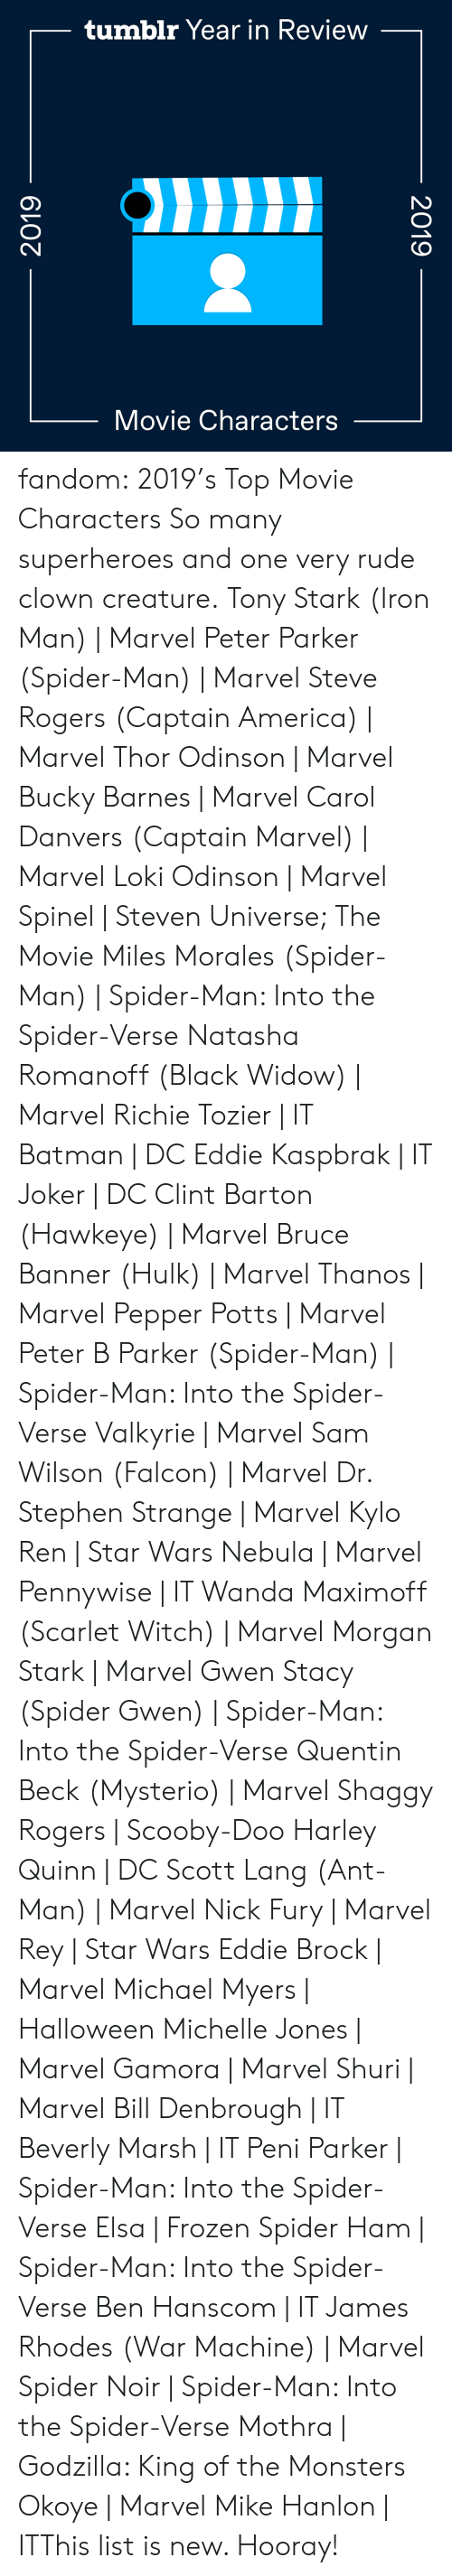 monsters: tumblr Year in Review  Movie Characters  2019  2019 fandom:  2019's Top Movie Characters  So many superheroes and one very rude clown creature.  Tony Stark (Iron Man) | Marvel  Peter Parker (Spider-Man) | Marvel  Steve Rogers (Captain America) | Marvel  Thor Odinson | Marvel  Bucky Barnes | Marvel  Carol Danvers (Captain Marvel) | Marvel  Loki Odinson | Marvel  Spinel | Steven Universe; The Movie  Miles Morales (Spider-Man) | Spider-Man: Into the Spider-Verse  Natasha Romanoff (Black Widow) | Marvel  Richie Tozier | IT  Batman | DC  Eddie Kaspbrak | IT  Joker | DC  Clint Barton (Hawkeye) | Marvel  Bruce Banner (Hulk) | Marvel  Thanos | Marvel  Pepper Potts | Marvel  Peter B Parker (Spider-Man) | Spider-Man: Into the Spider-Verse  Valkyrie | Marvel  Sam Wilson (Falcon) | Marvel  Dr. Stephen Strange | Marvel  Kylo Ren | Star Wars  Nebula | Marvel  Pennywise | IT  Wanda Maximoff (Scarlet Witch) | Marvel  Morgan Stark | Marvel  Gwen Stacy (Spider Gwen) | Spider-Man: Into the Spider-Verse  Quentin Beck (Mysterio) | Marvel  Shaggy Rogers | Scooby-Doo  Harley Quinn | DC  Scott Lang (Ant-Man) | Marvel  Nick Fury | Marvel  Rey | Star Wars  Eddie Brock | Marvel  Michael Myers | Halloween  Michelle Jones | Marvel  Gamora | Marvel  Shuri | Marvel  Bill Denbrough | IT  Beverly Marsh | IT  Peni Parker | Spider-Man: Into the Spider-Verse  Elsa | Frozen  Spider Ham | Spider-Man: Into the Spider-Verse  Ben Hanscom | IT  James Rhodes (War Machine) | Marvel  Spider Noir | Spider-Man: Into the Spider-Verse  Mothra | Godzilla: King of the Monsters  Okoye | Marvel Mike Hanlon | ITThis list is new. Hooray!